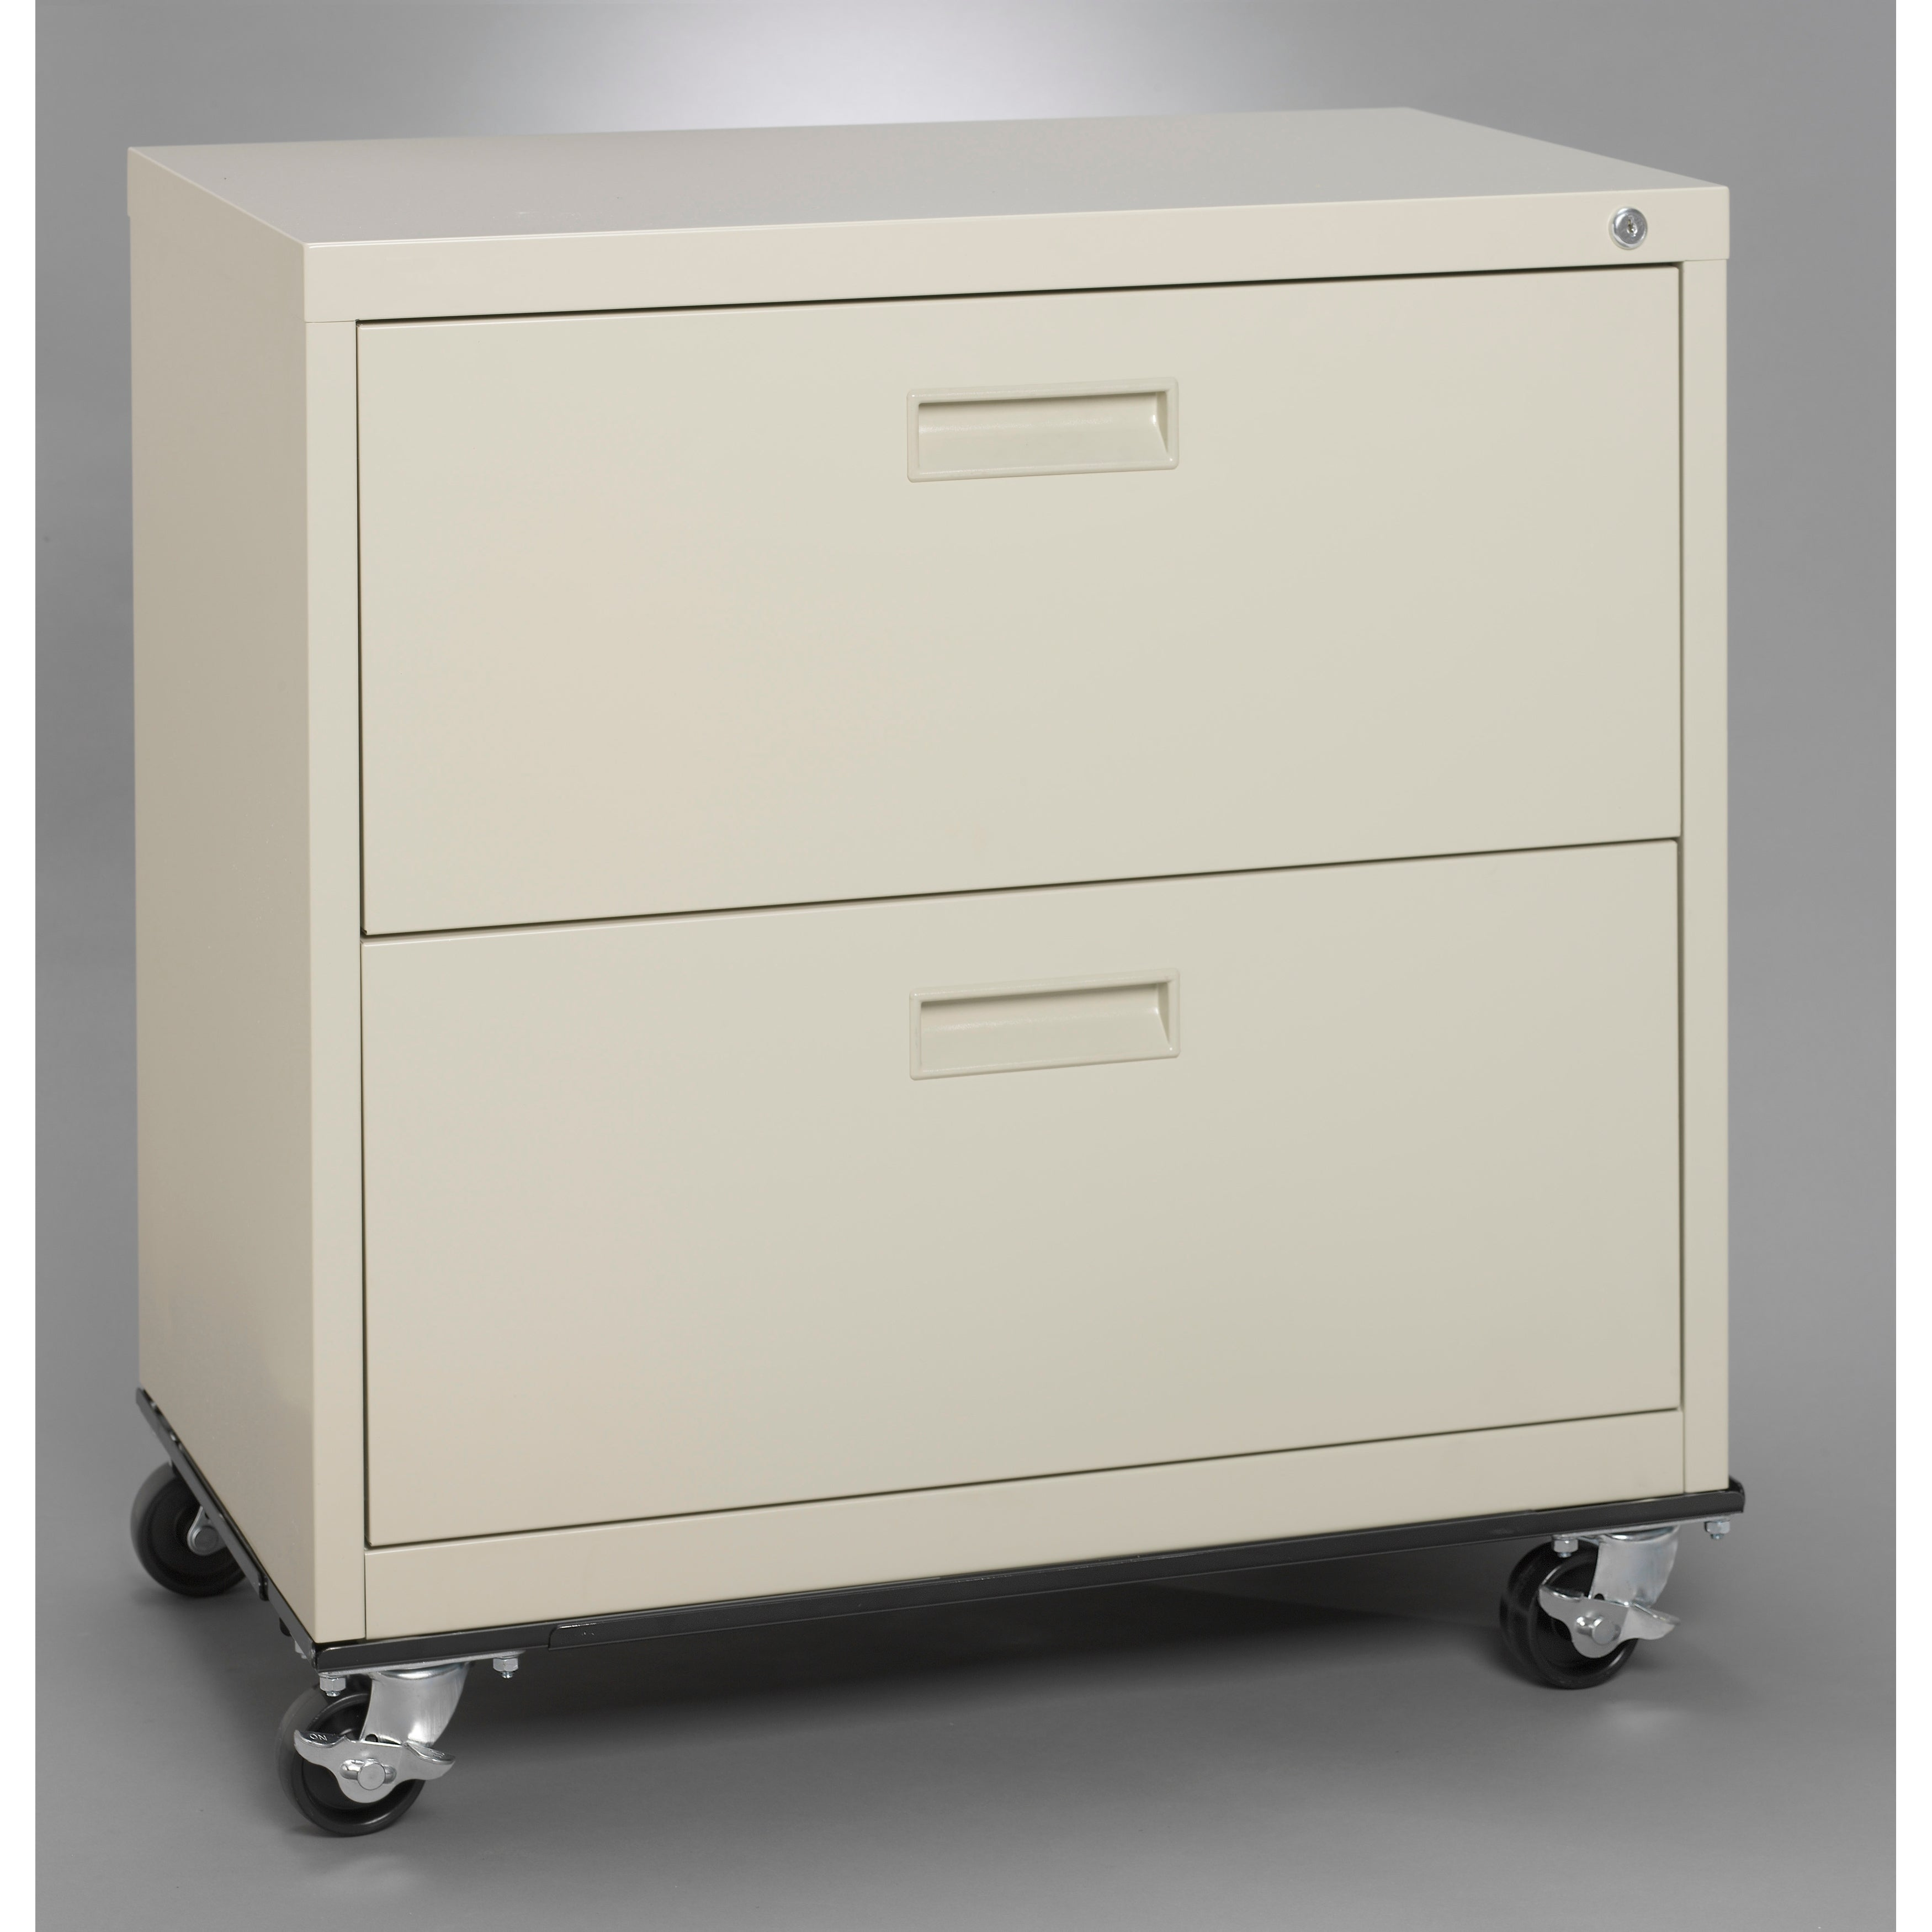 Hirsh Adjule Cabinet Dolly For Lateral File Cabinets Black Free Shipping Today 22591377